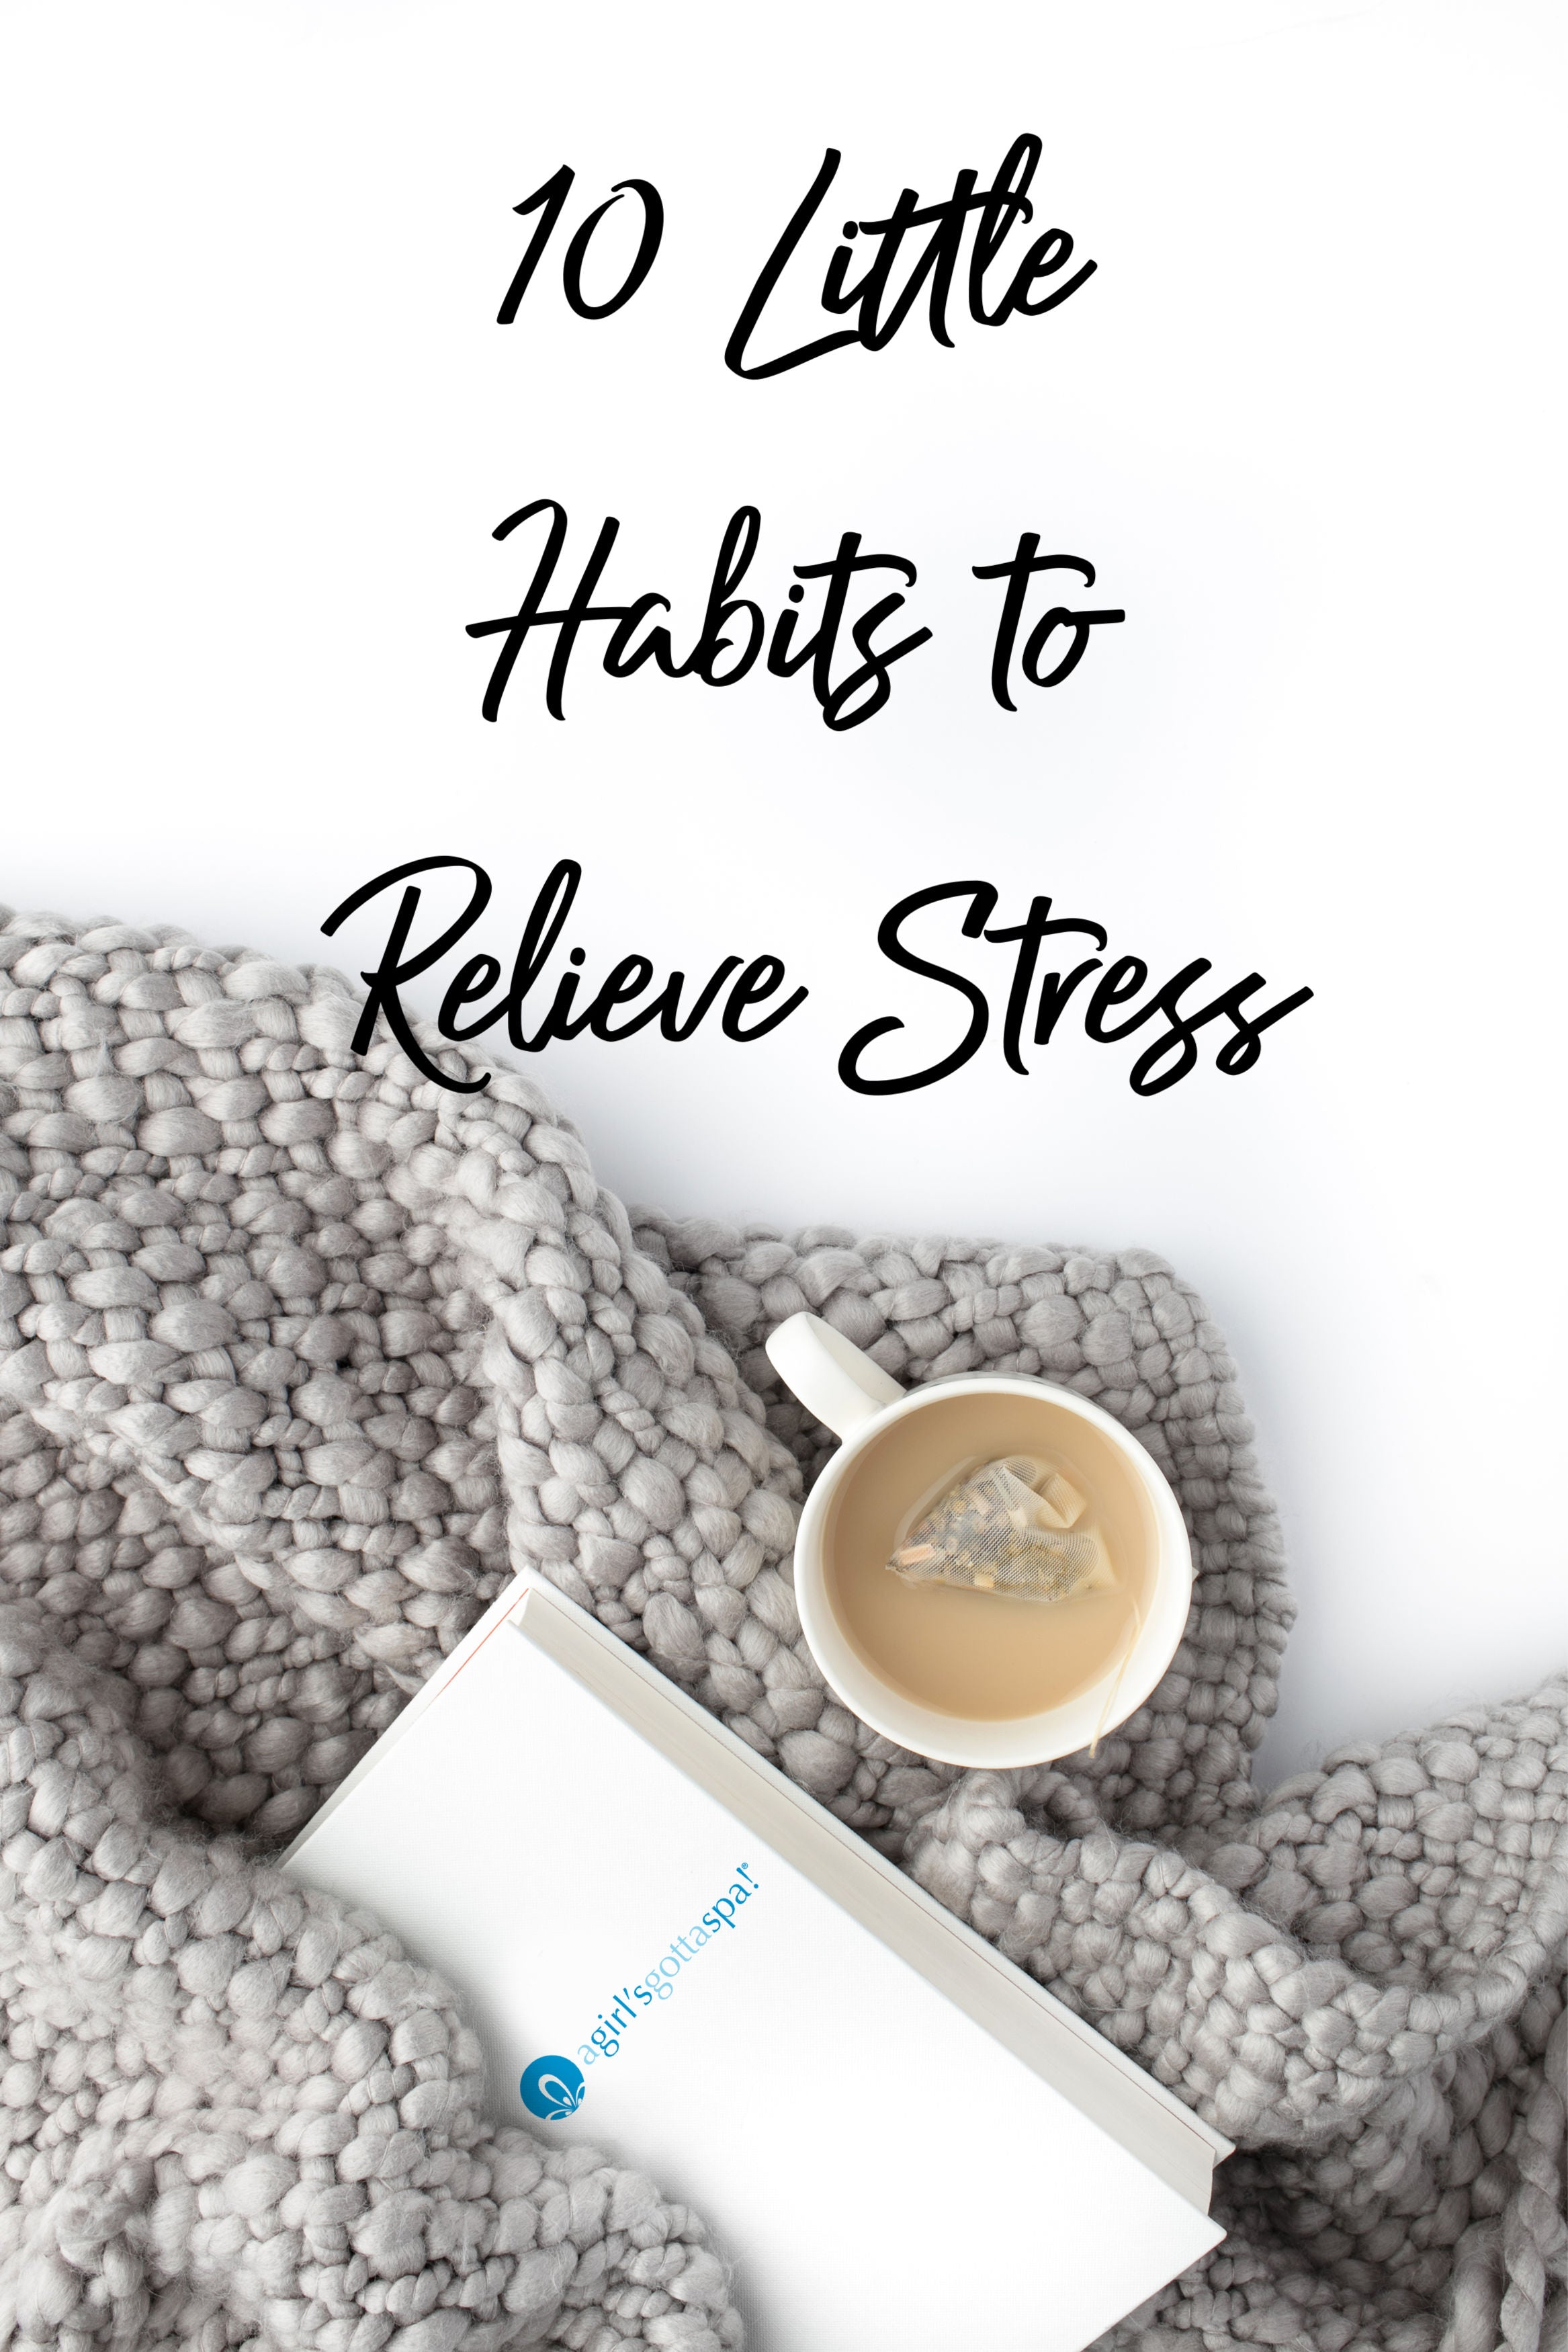 10 little habits to relieve stress